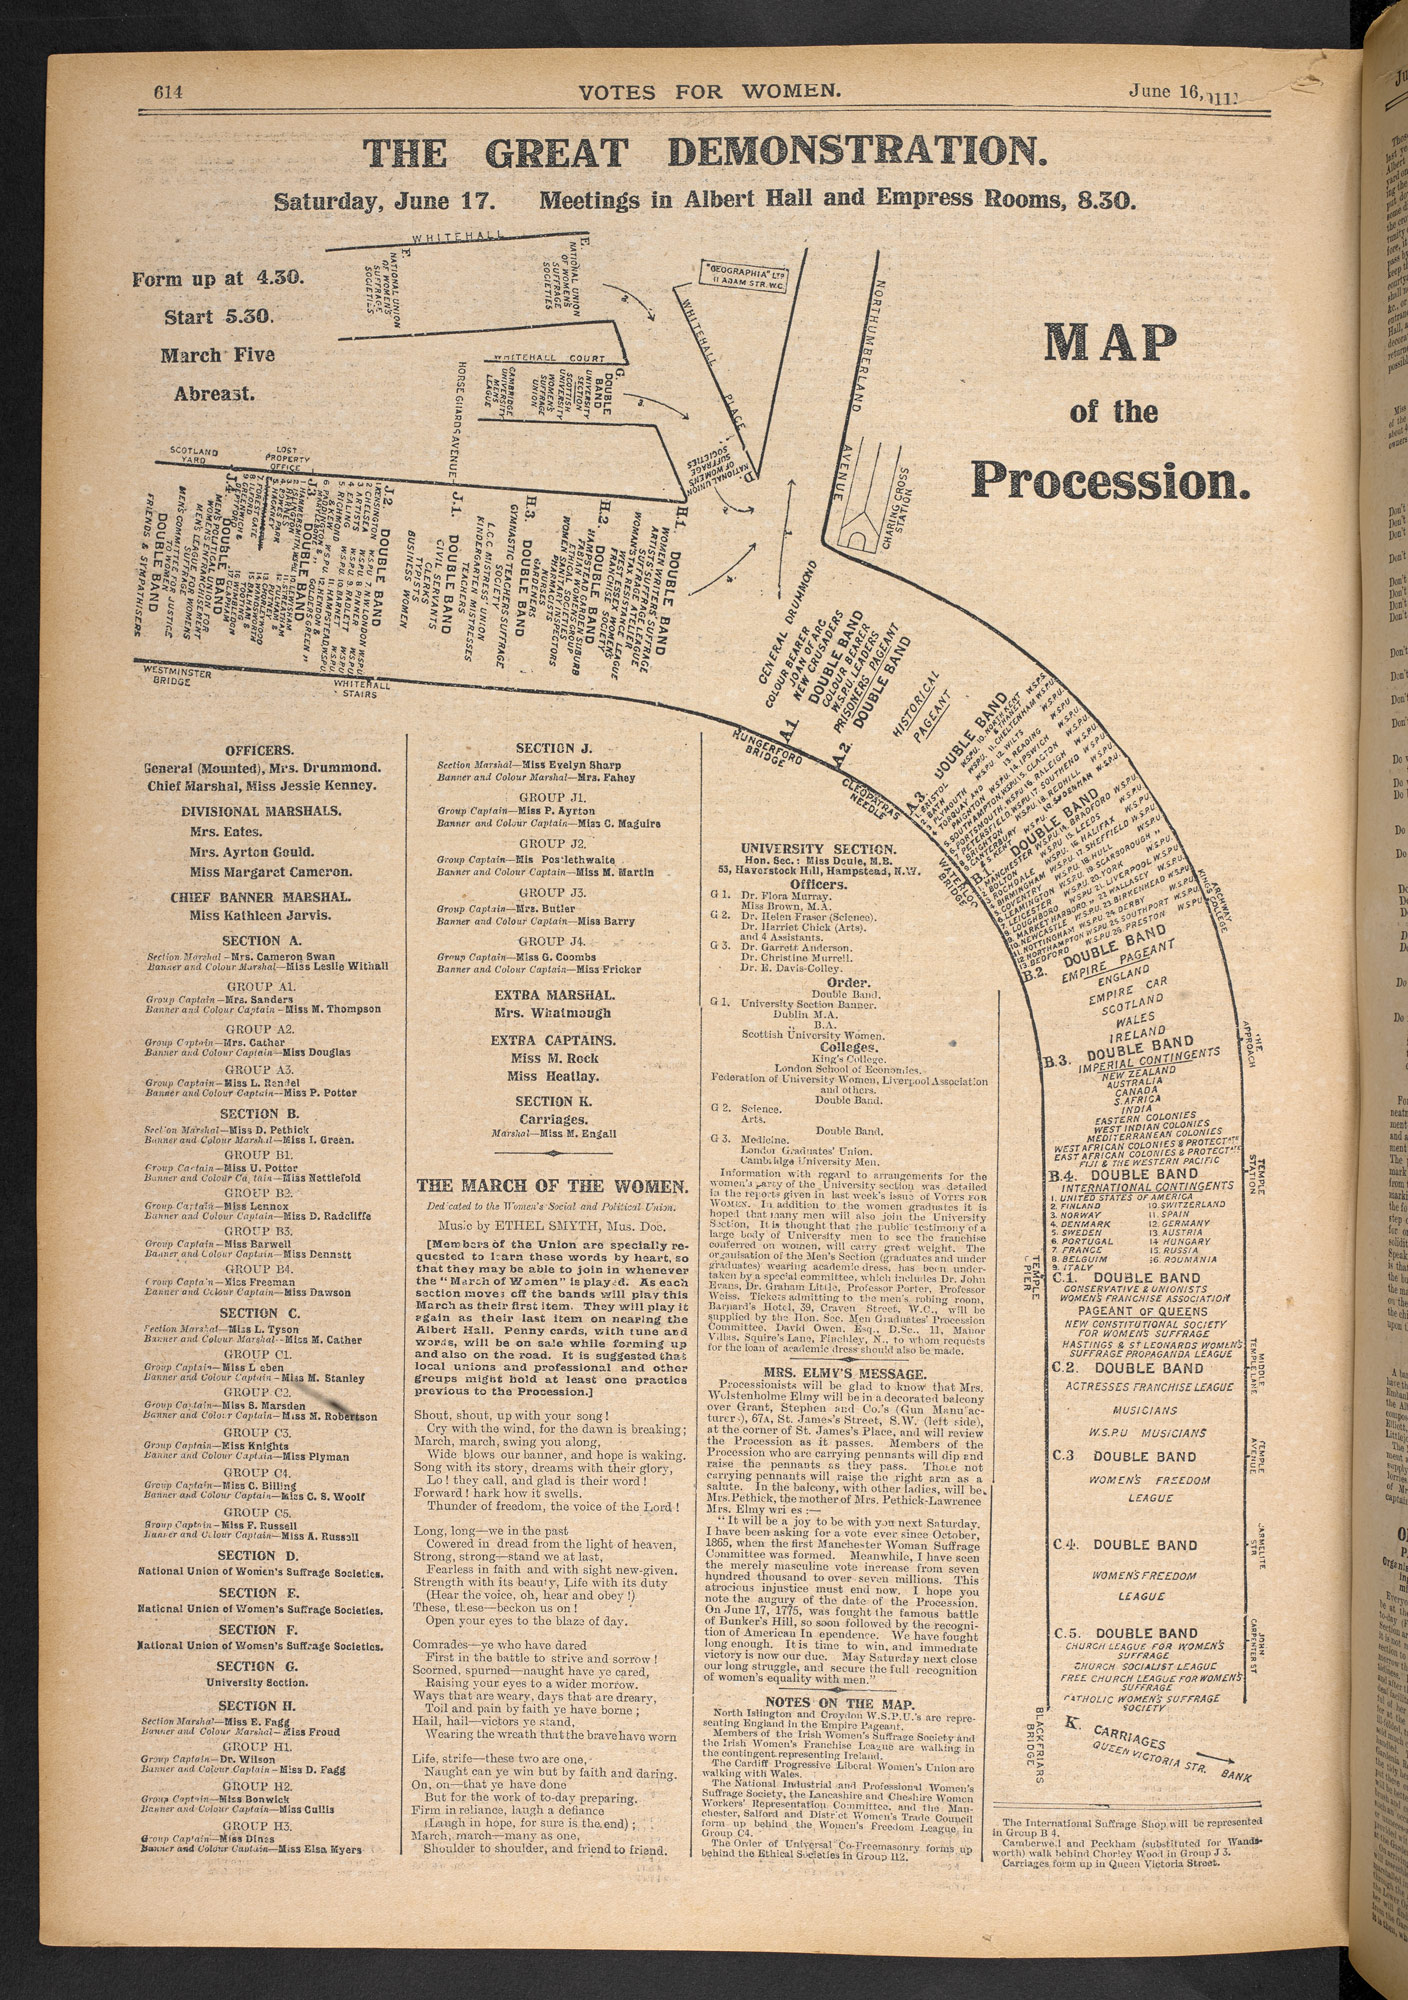 Plan of the route for the Suffragette's Coronation Procession in June 1911